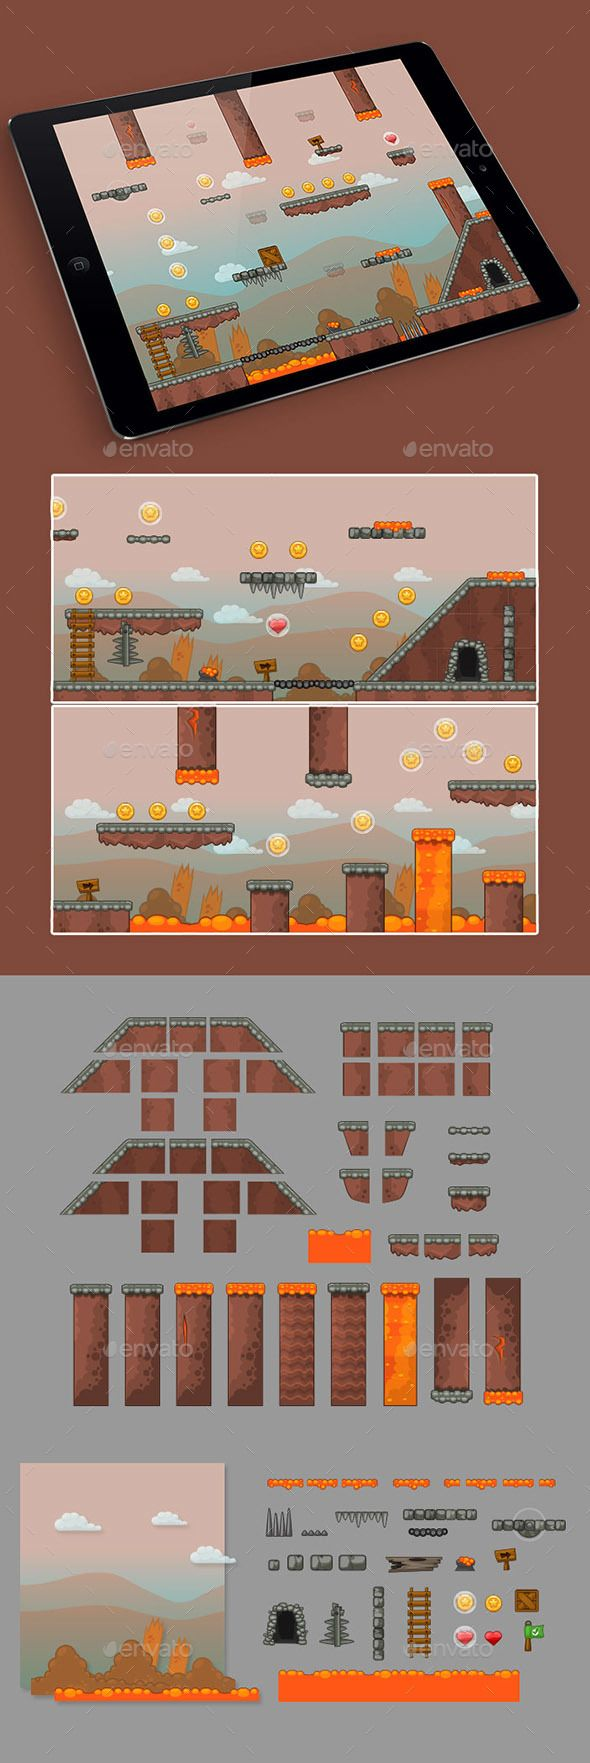 2D Stone Game Platformer Tilesets — Vector EPS #tileable #game design • Available here → https://graphicriver.net/item/2d-stone-game-platformer-tilesets/15614665?ref=pxcr